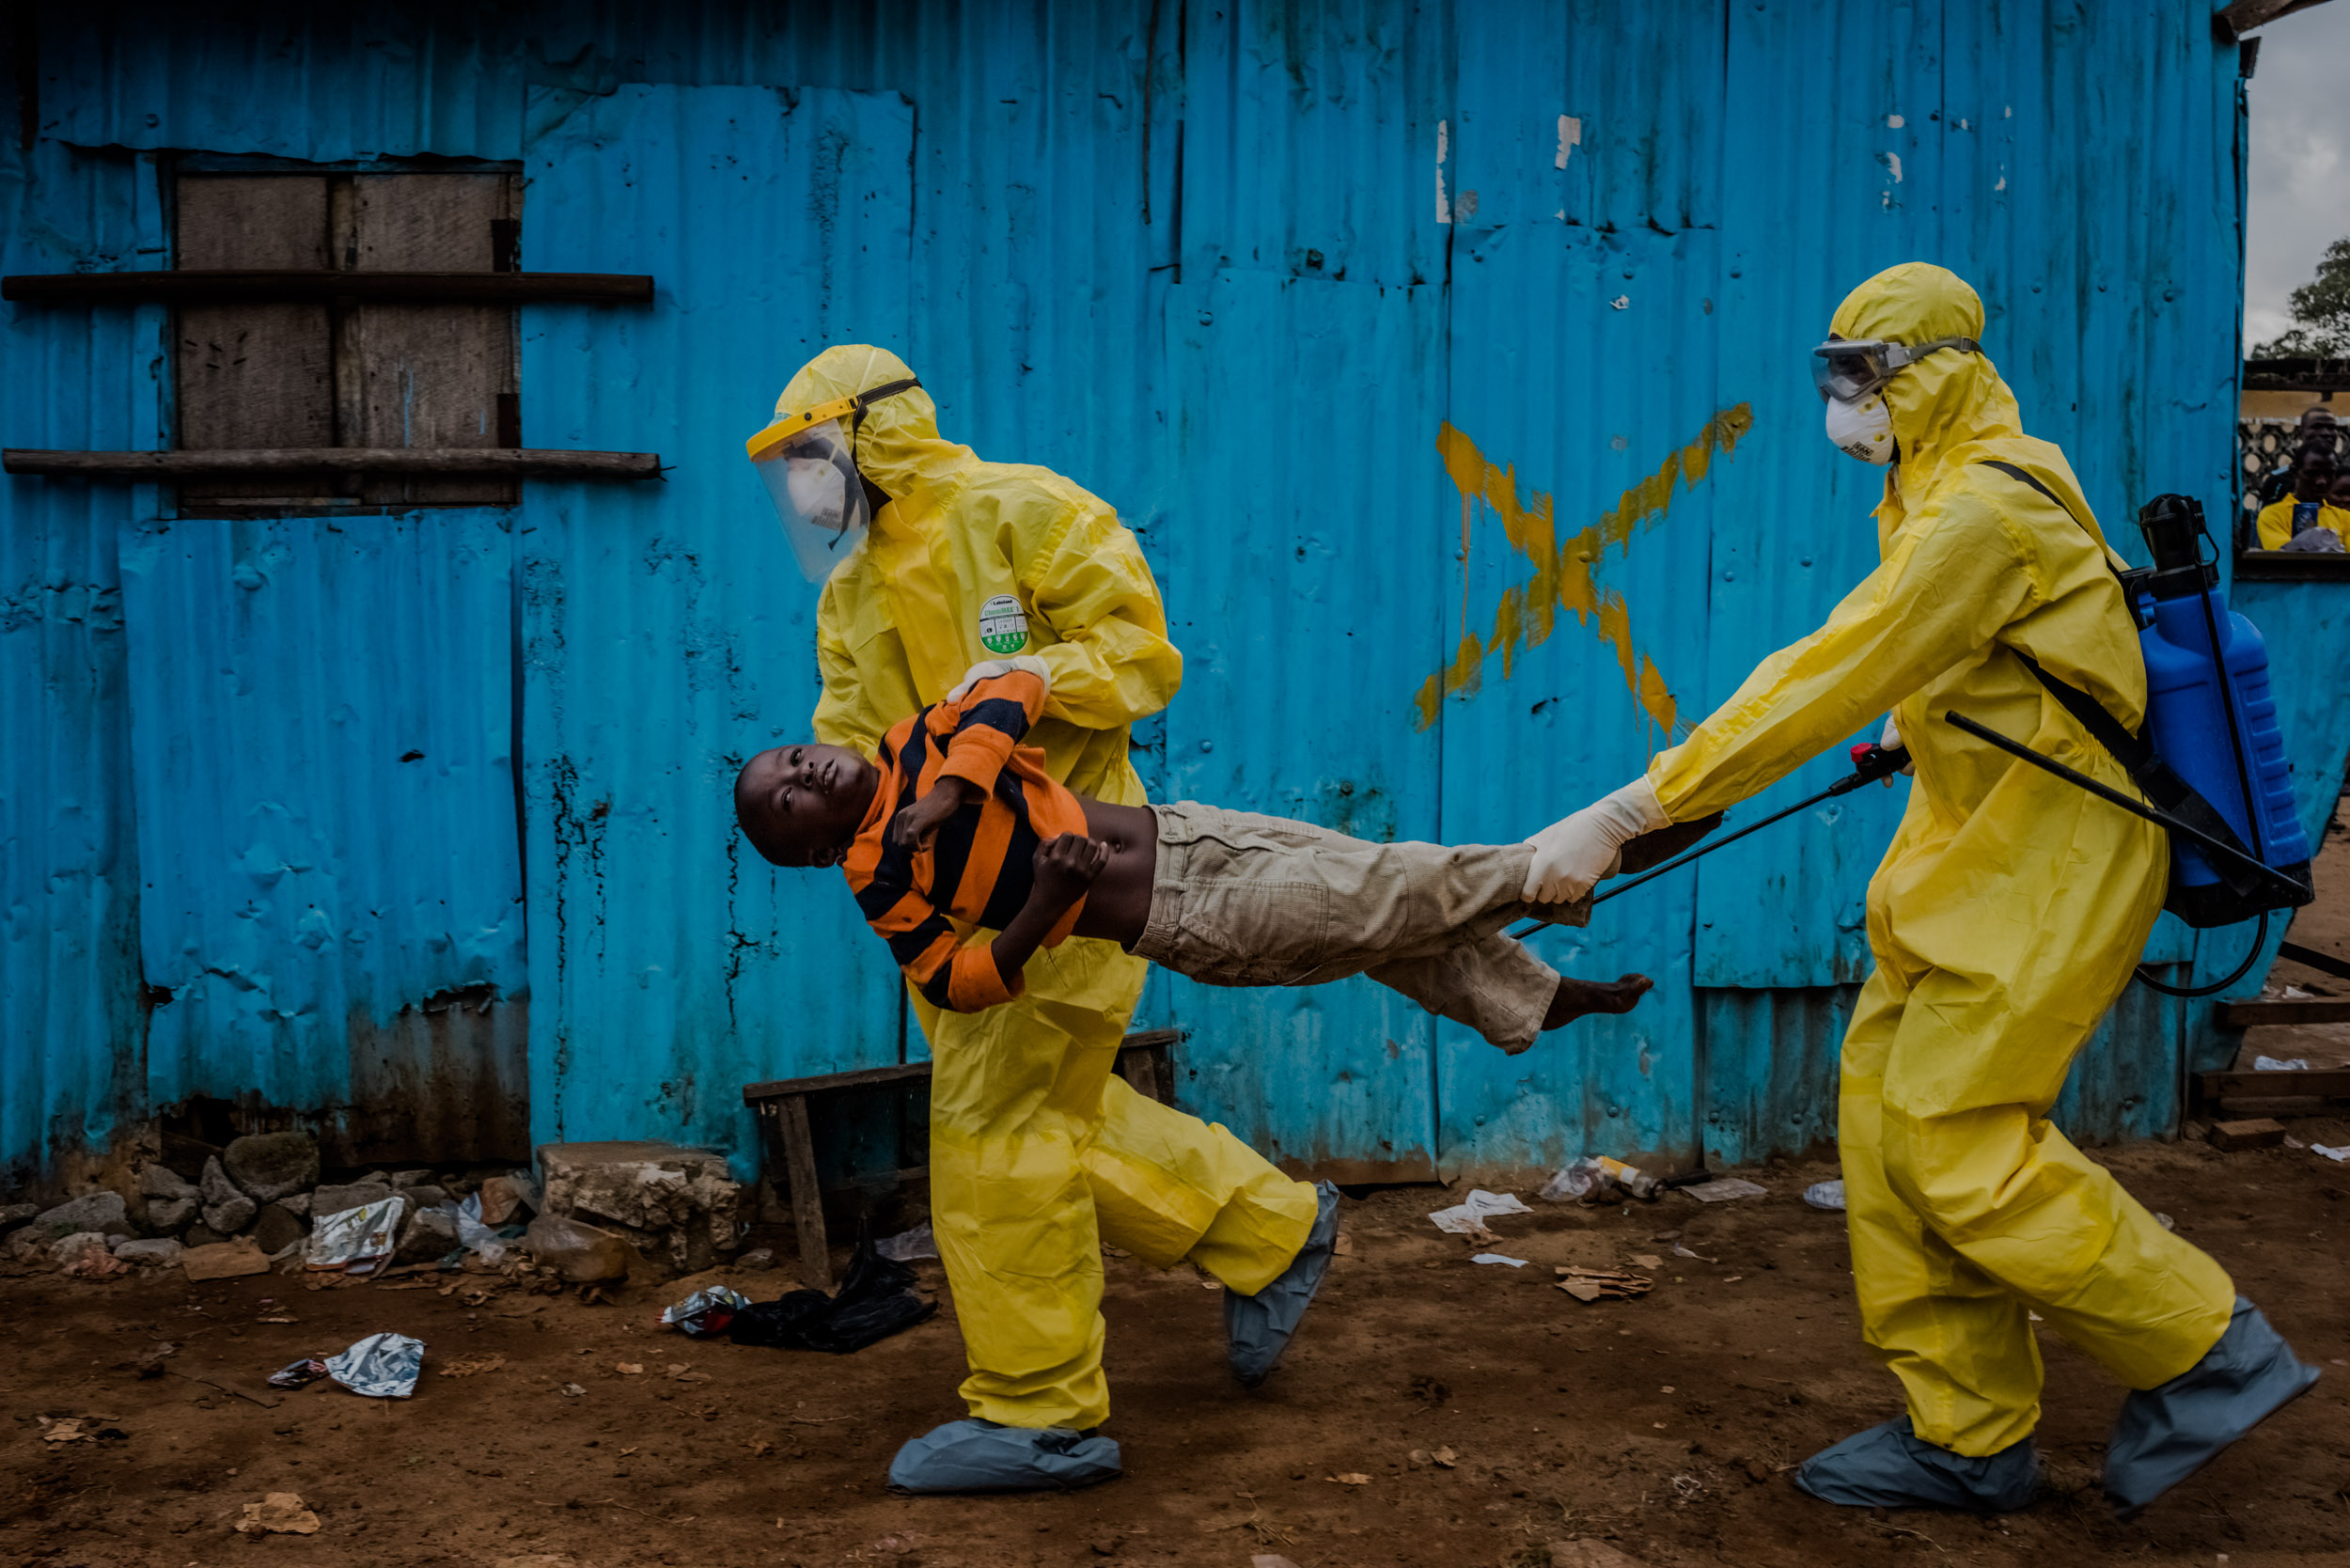 The Ebola outbreak in West Africa, first reported in March 2014, and believed by scientists to have started in late December with the death of a 2-year-old boy, thought to have contracted the virus from bats in the remote Guinean village of Meliandou, has rapidly become the deadliest occurrence of the disease since its discovery in 1976.     The current epidemic sweeping across West Africa has now killed more than all other known Ebola outbreaks combined. Over 9,000 people had been reported as having died from the disease in six countries; Liberia, Guinea, Sierra Leone, Nigeria, the US and Mali. The total number of reported cases is more than 23,000. Whilst numbers are in decline in Liberia, the epidemic is still continuing in Sierra Leone and Guinea.    Read More at the  New York Times .